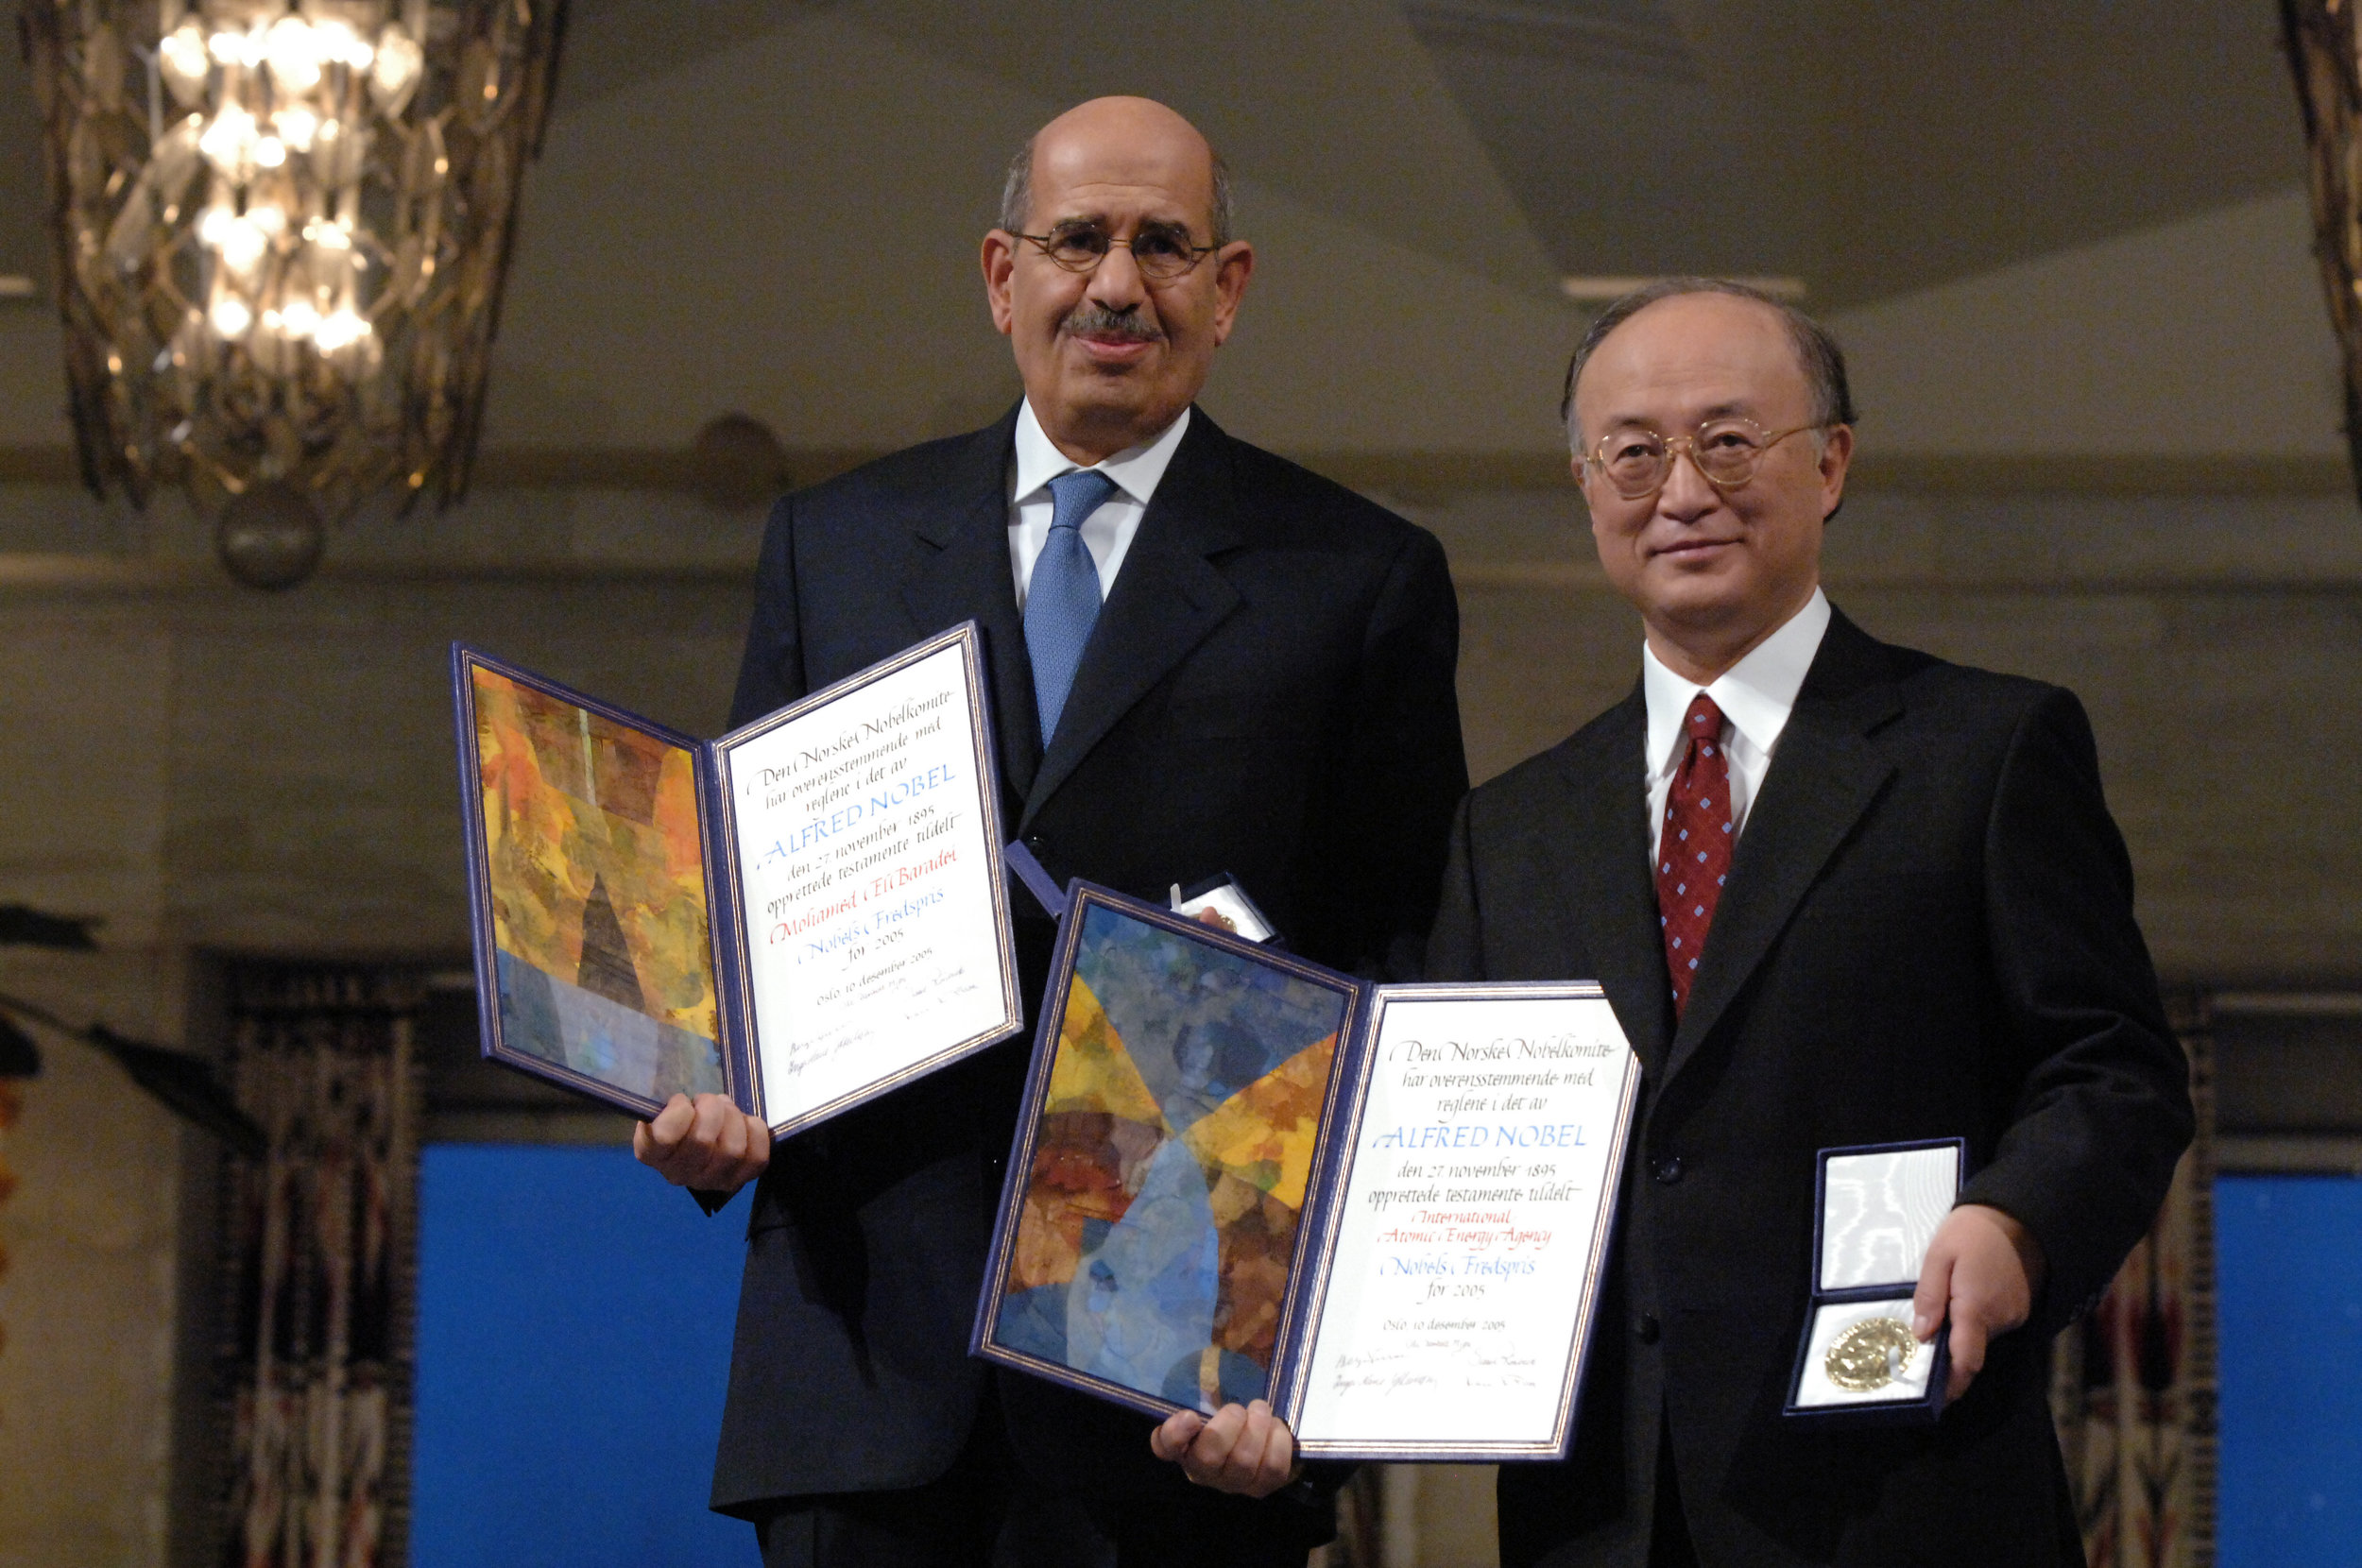 The Nobel Peace Prize 2005 was awarded to Director General Dr. Mohamed ElBaradei and the IAEA represented by Japanese Ambassdor Yukiya Amano. (Nobel Peace Prize Celebrations December 8-11, 2005, Oslo, Norway)